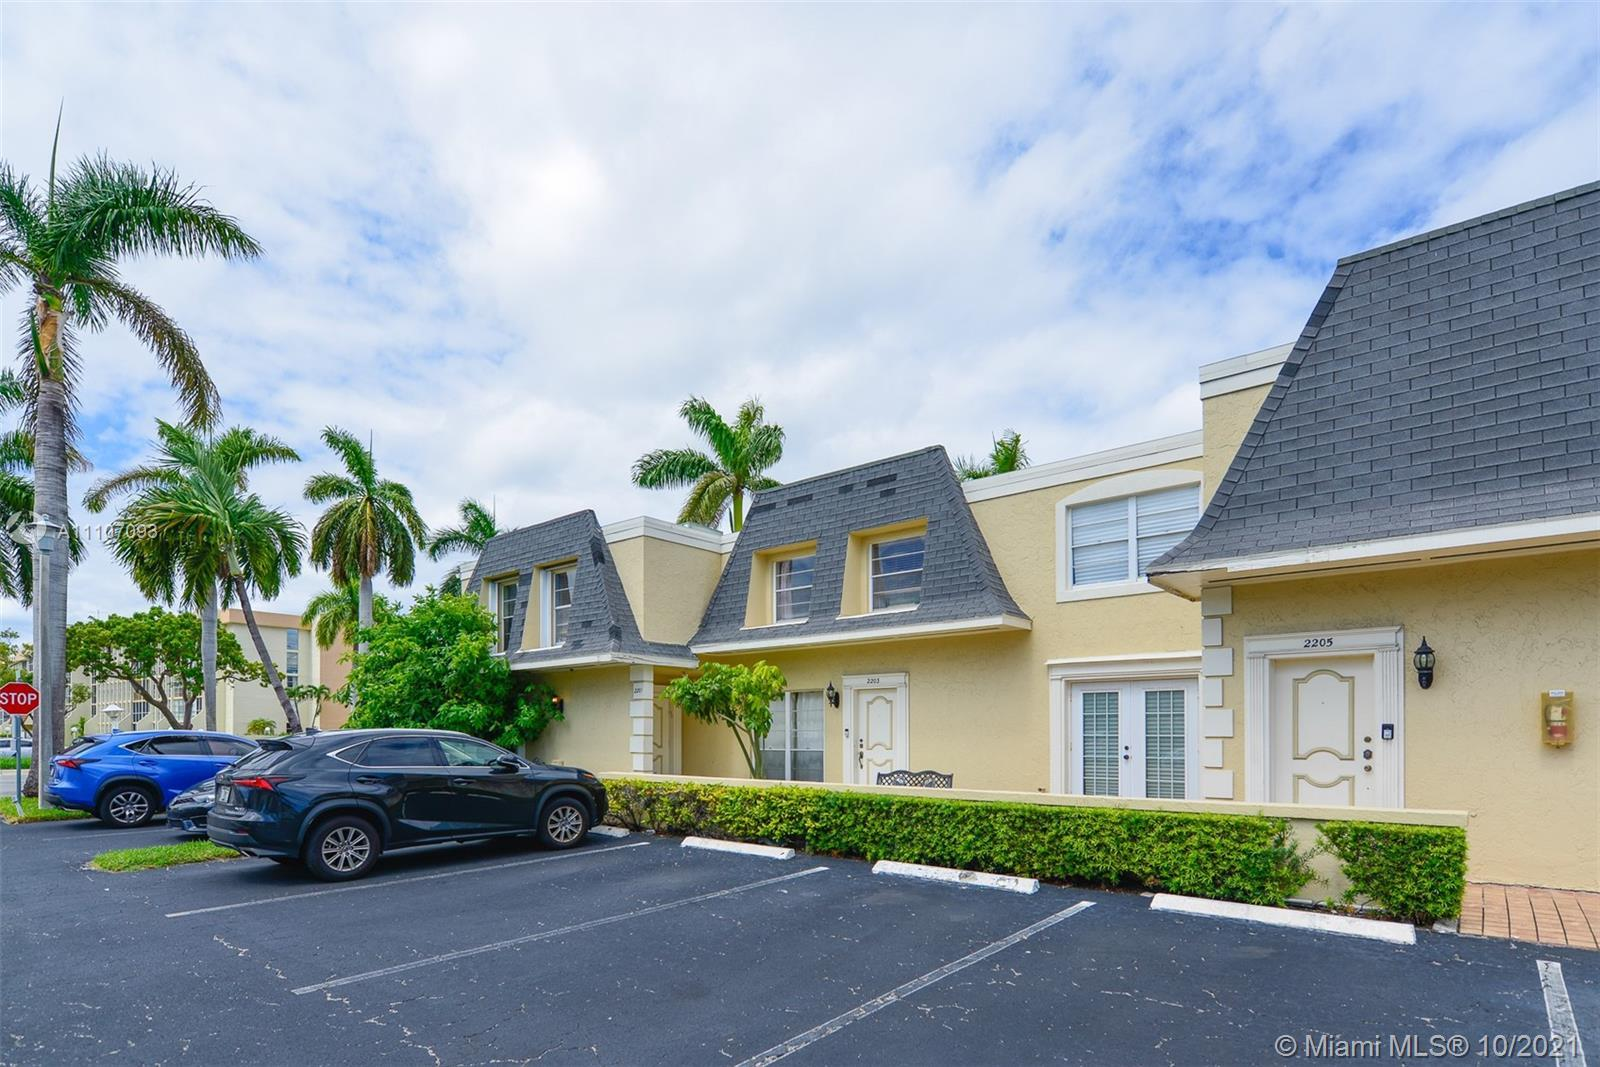 TWO FLOORS VENETIAN PARK, 3 BED AND 2, 5 BATH TOWNHOUSE. THIS BEAUTIFUL HOME FEATURES  OPEN FLOOR PL